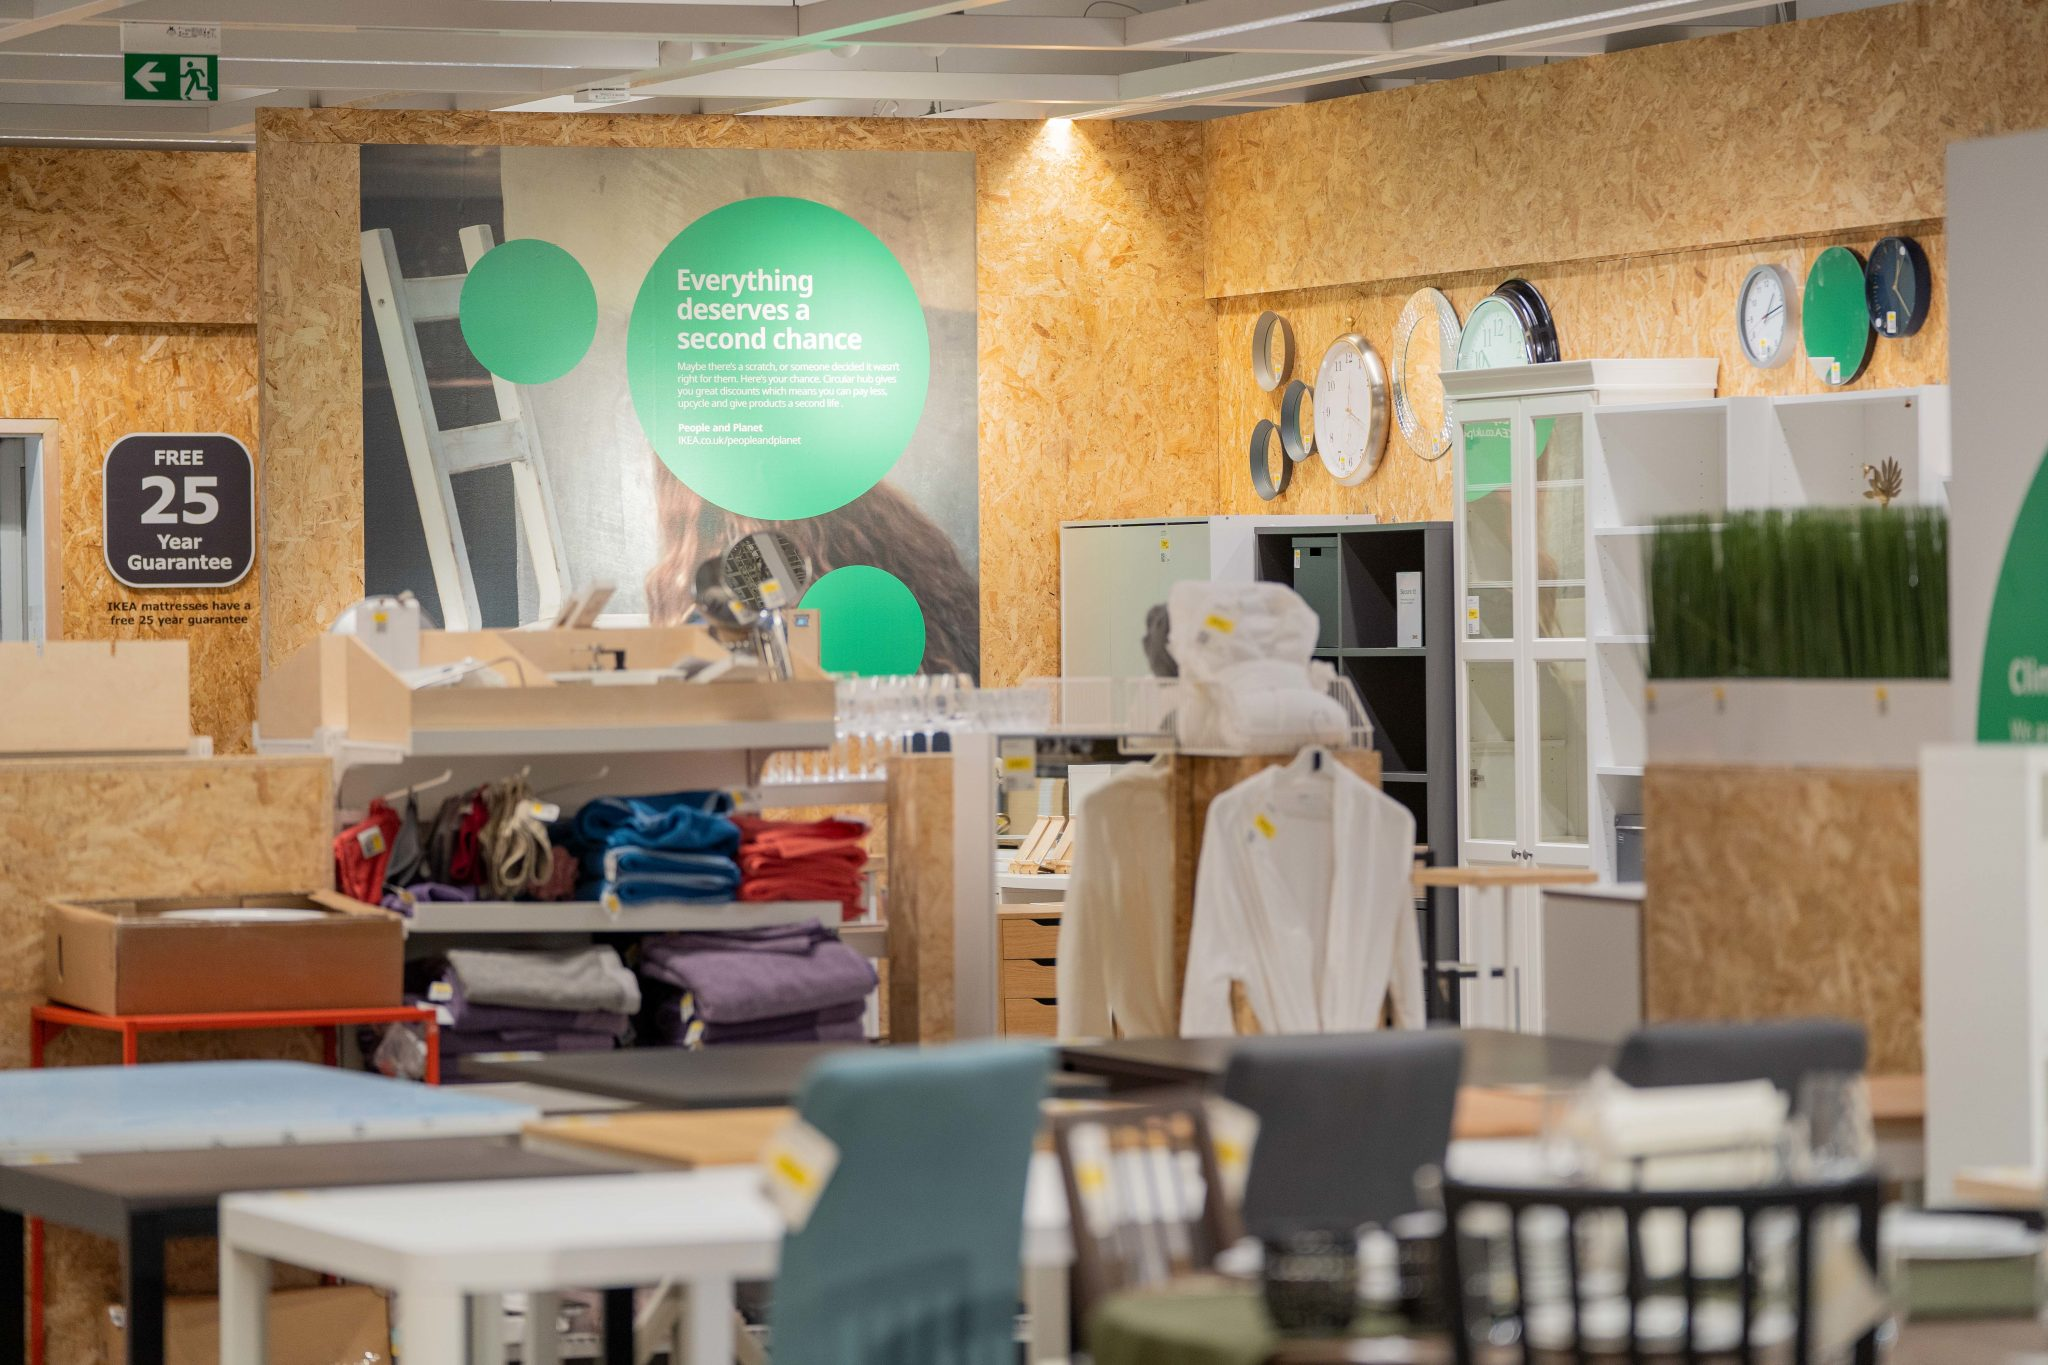 IKEA launches Buy Back, enabling customers to sell back old furniture, giving thousands of items a second life